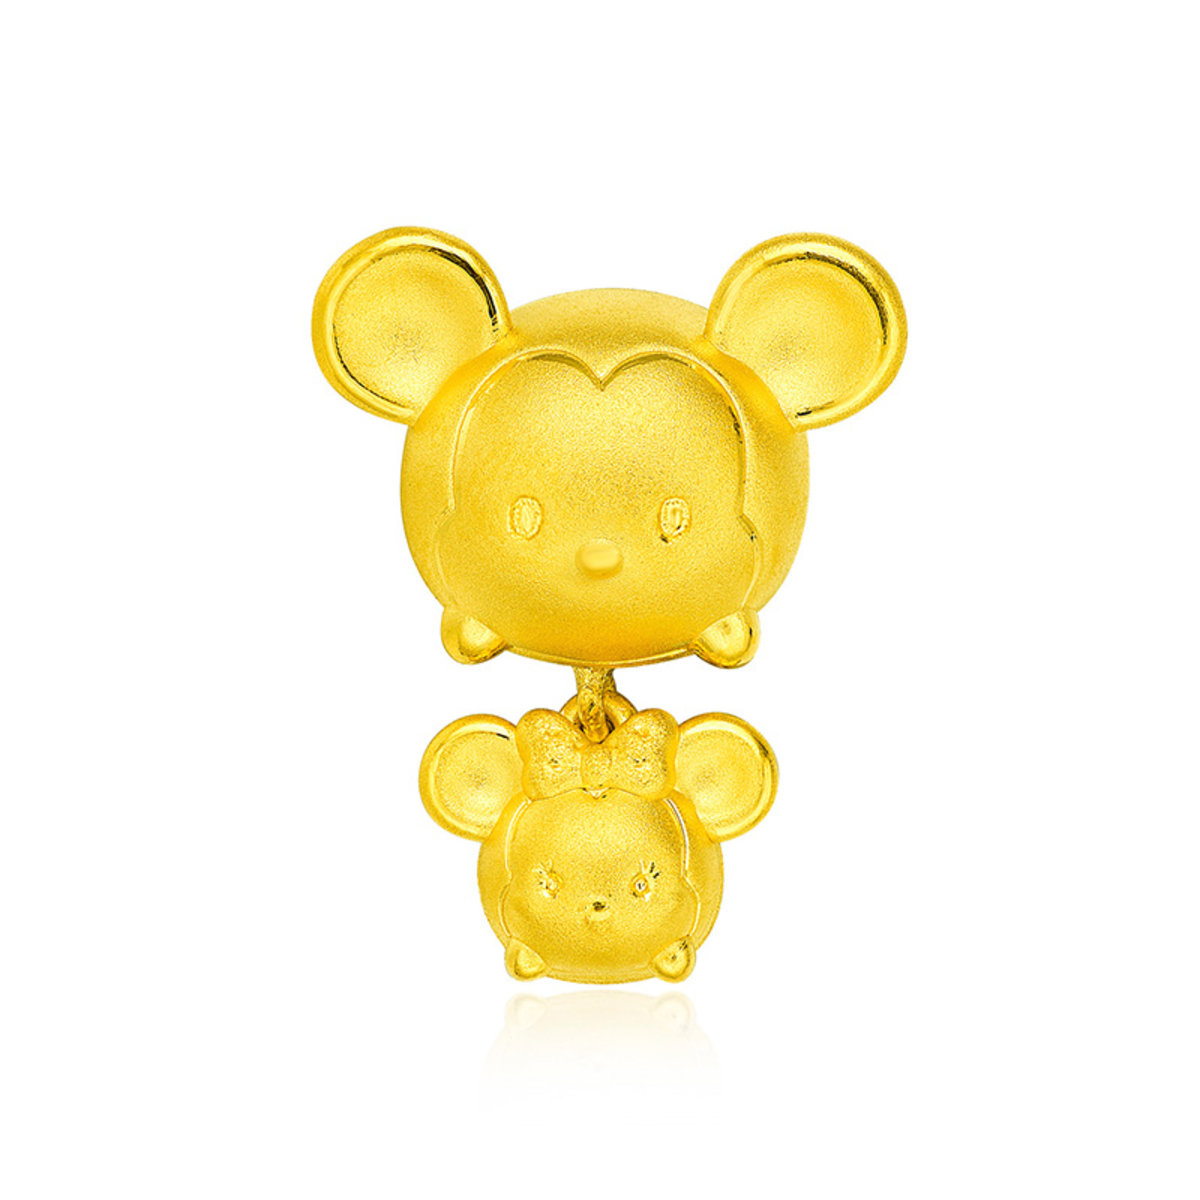 Disney Tsum Tsum Collection: Mickey Mouse & Minnie Mouse 999 Gold Pendant